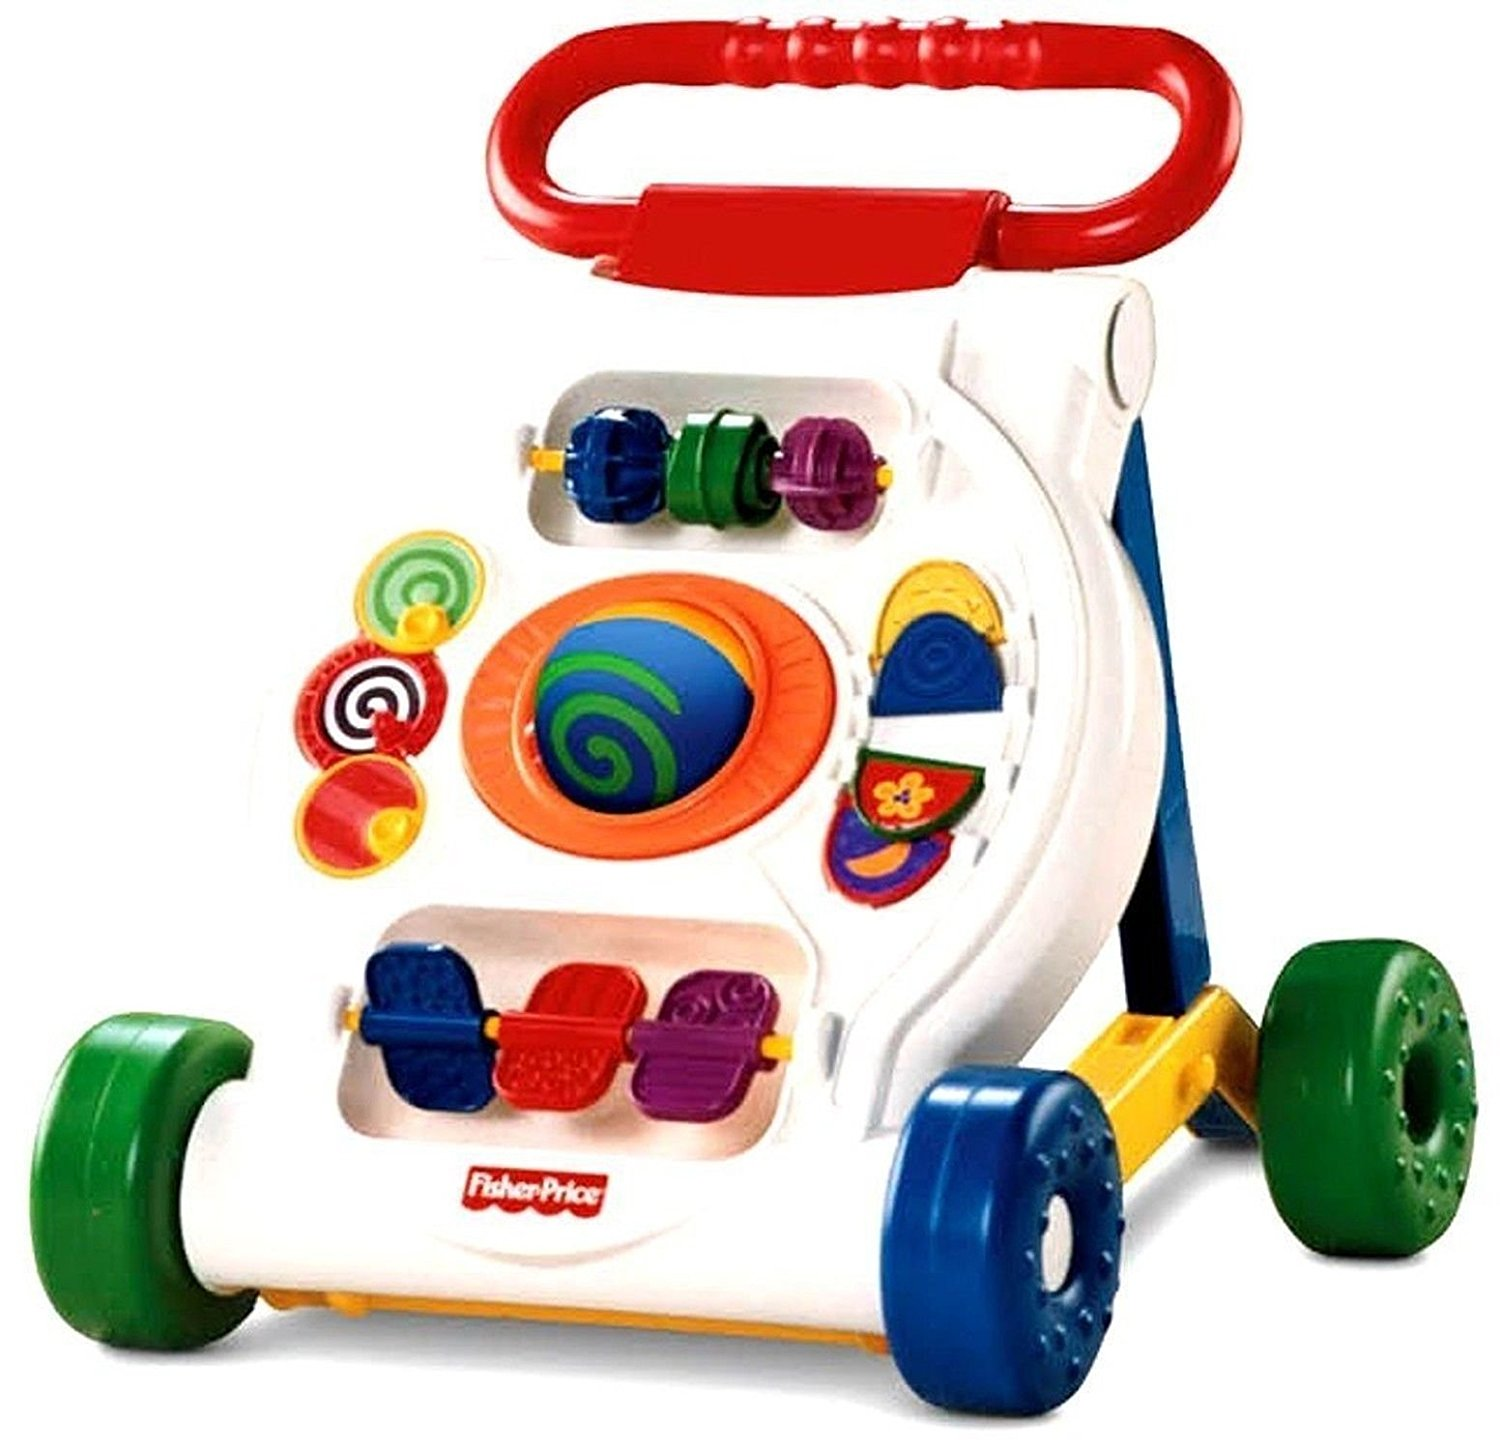 Buy Babies Infant Learn To Walk Push Toy Walker Steps Baby Practice